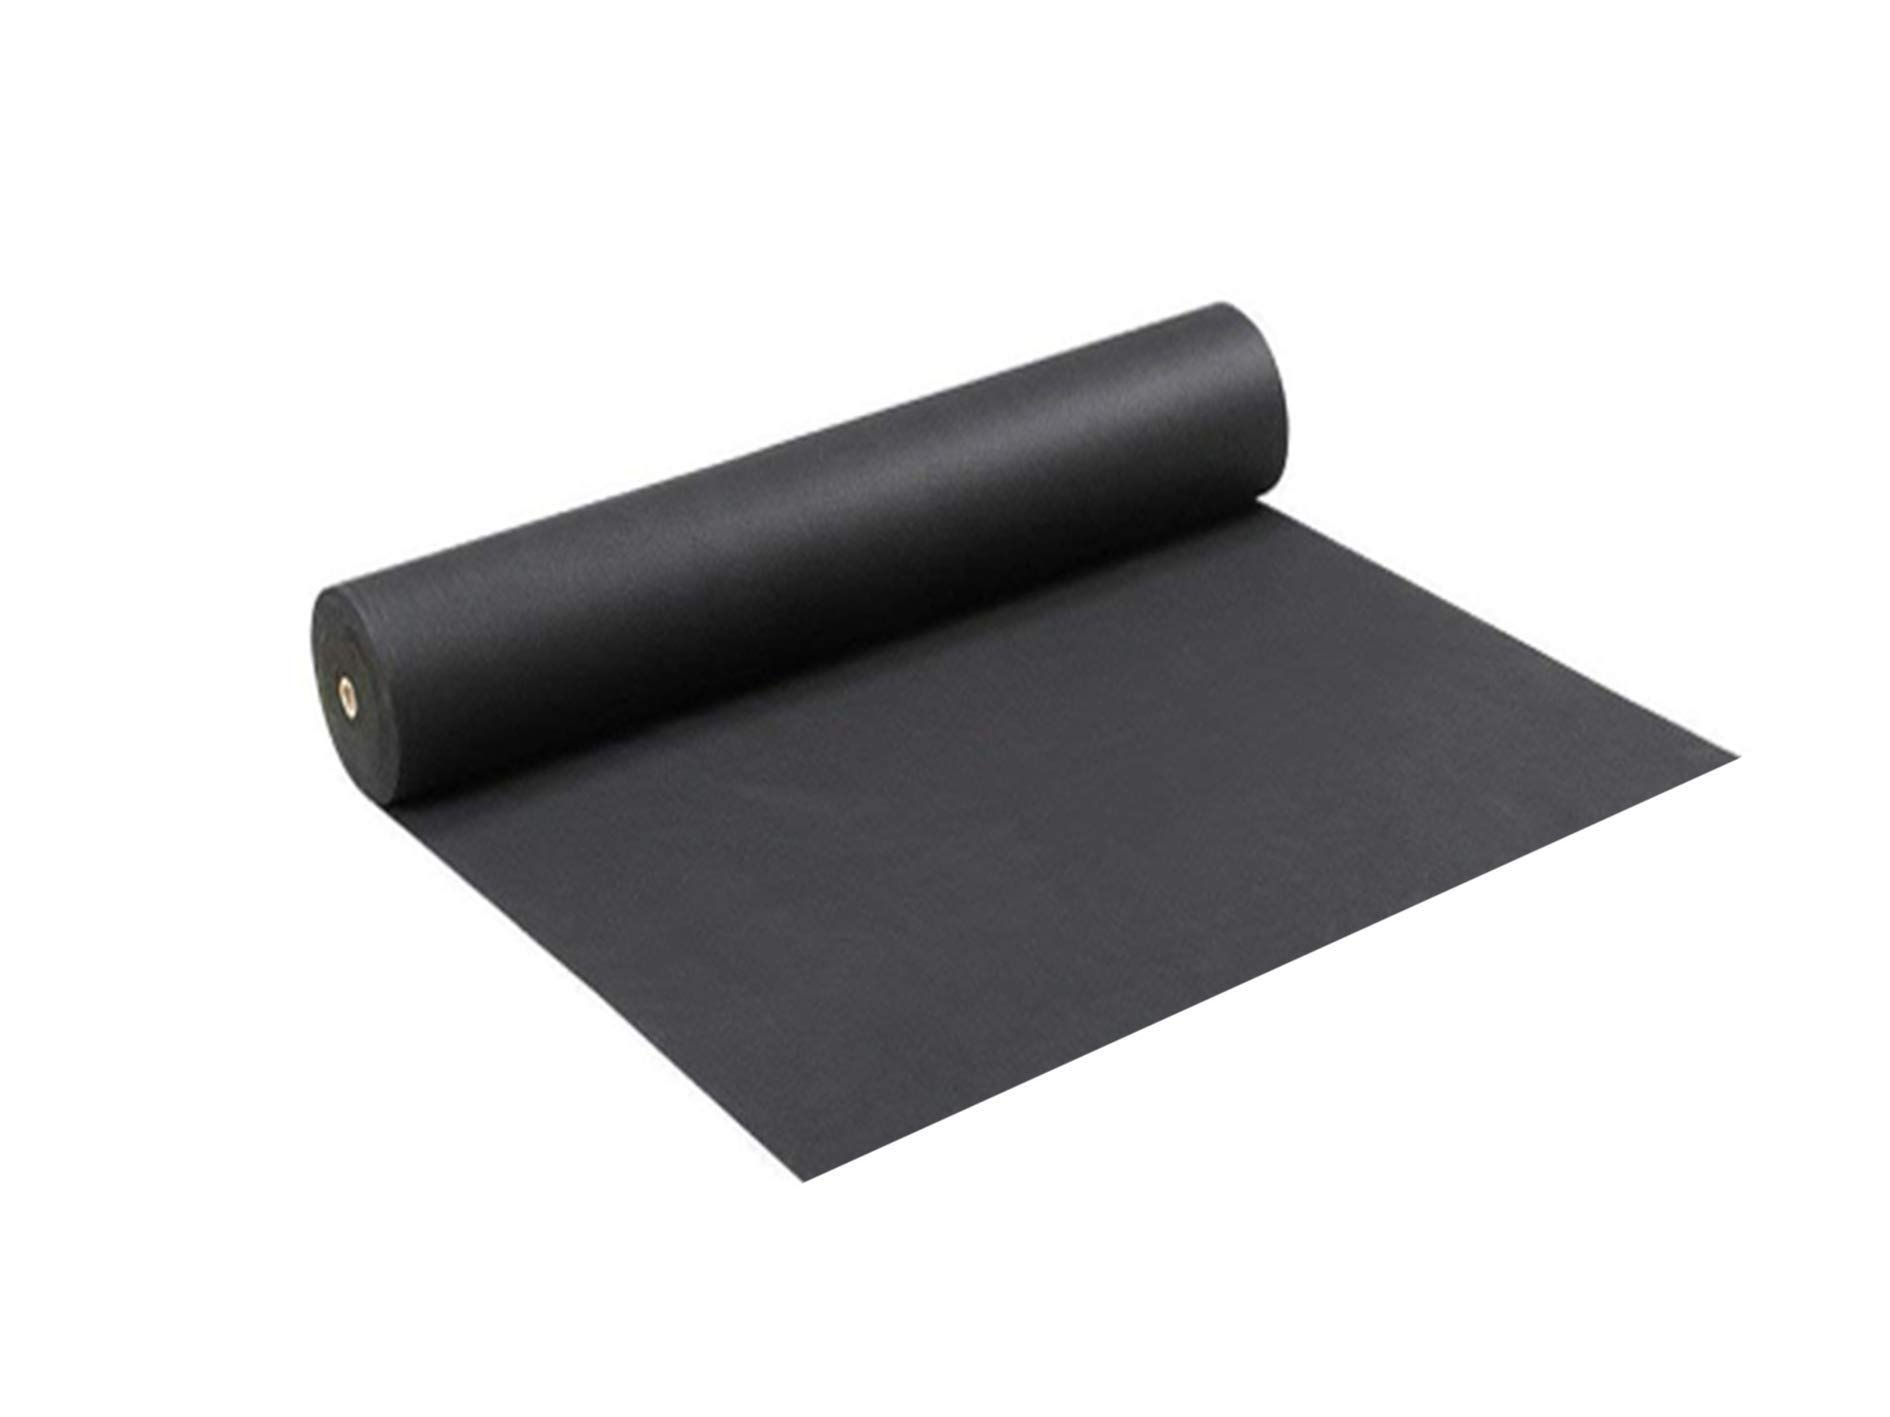 LAVZAN 4.92ftx26.24ft Black Garden Weed Barrier Landscape Fabric Non-Woven Fabric Barrier Durable & Heavy-Duty (90g/m²) Weed Block Gardening Mat, Easy Setup & Superior Weed Control, Eco-Frie